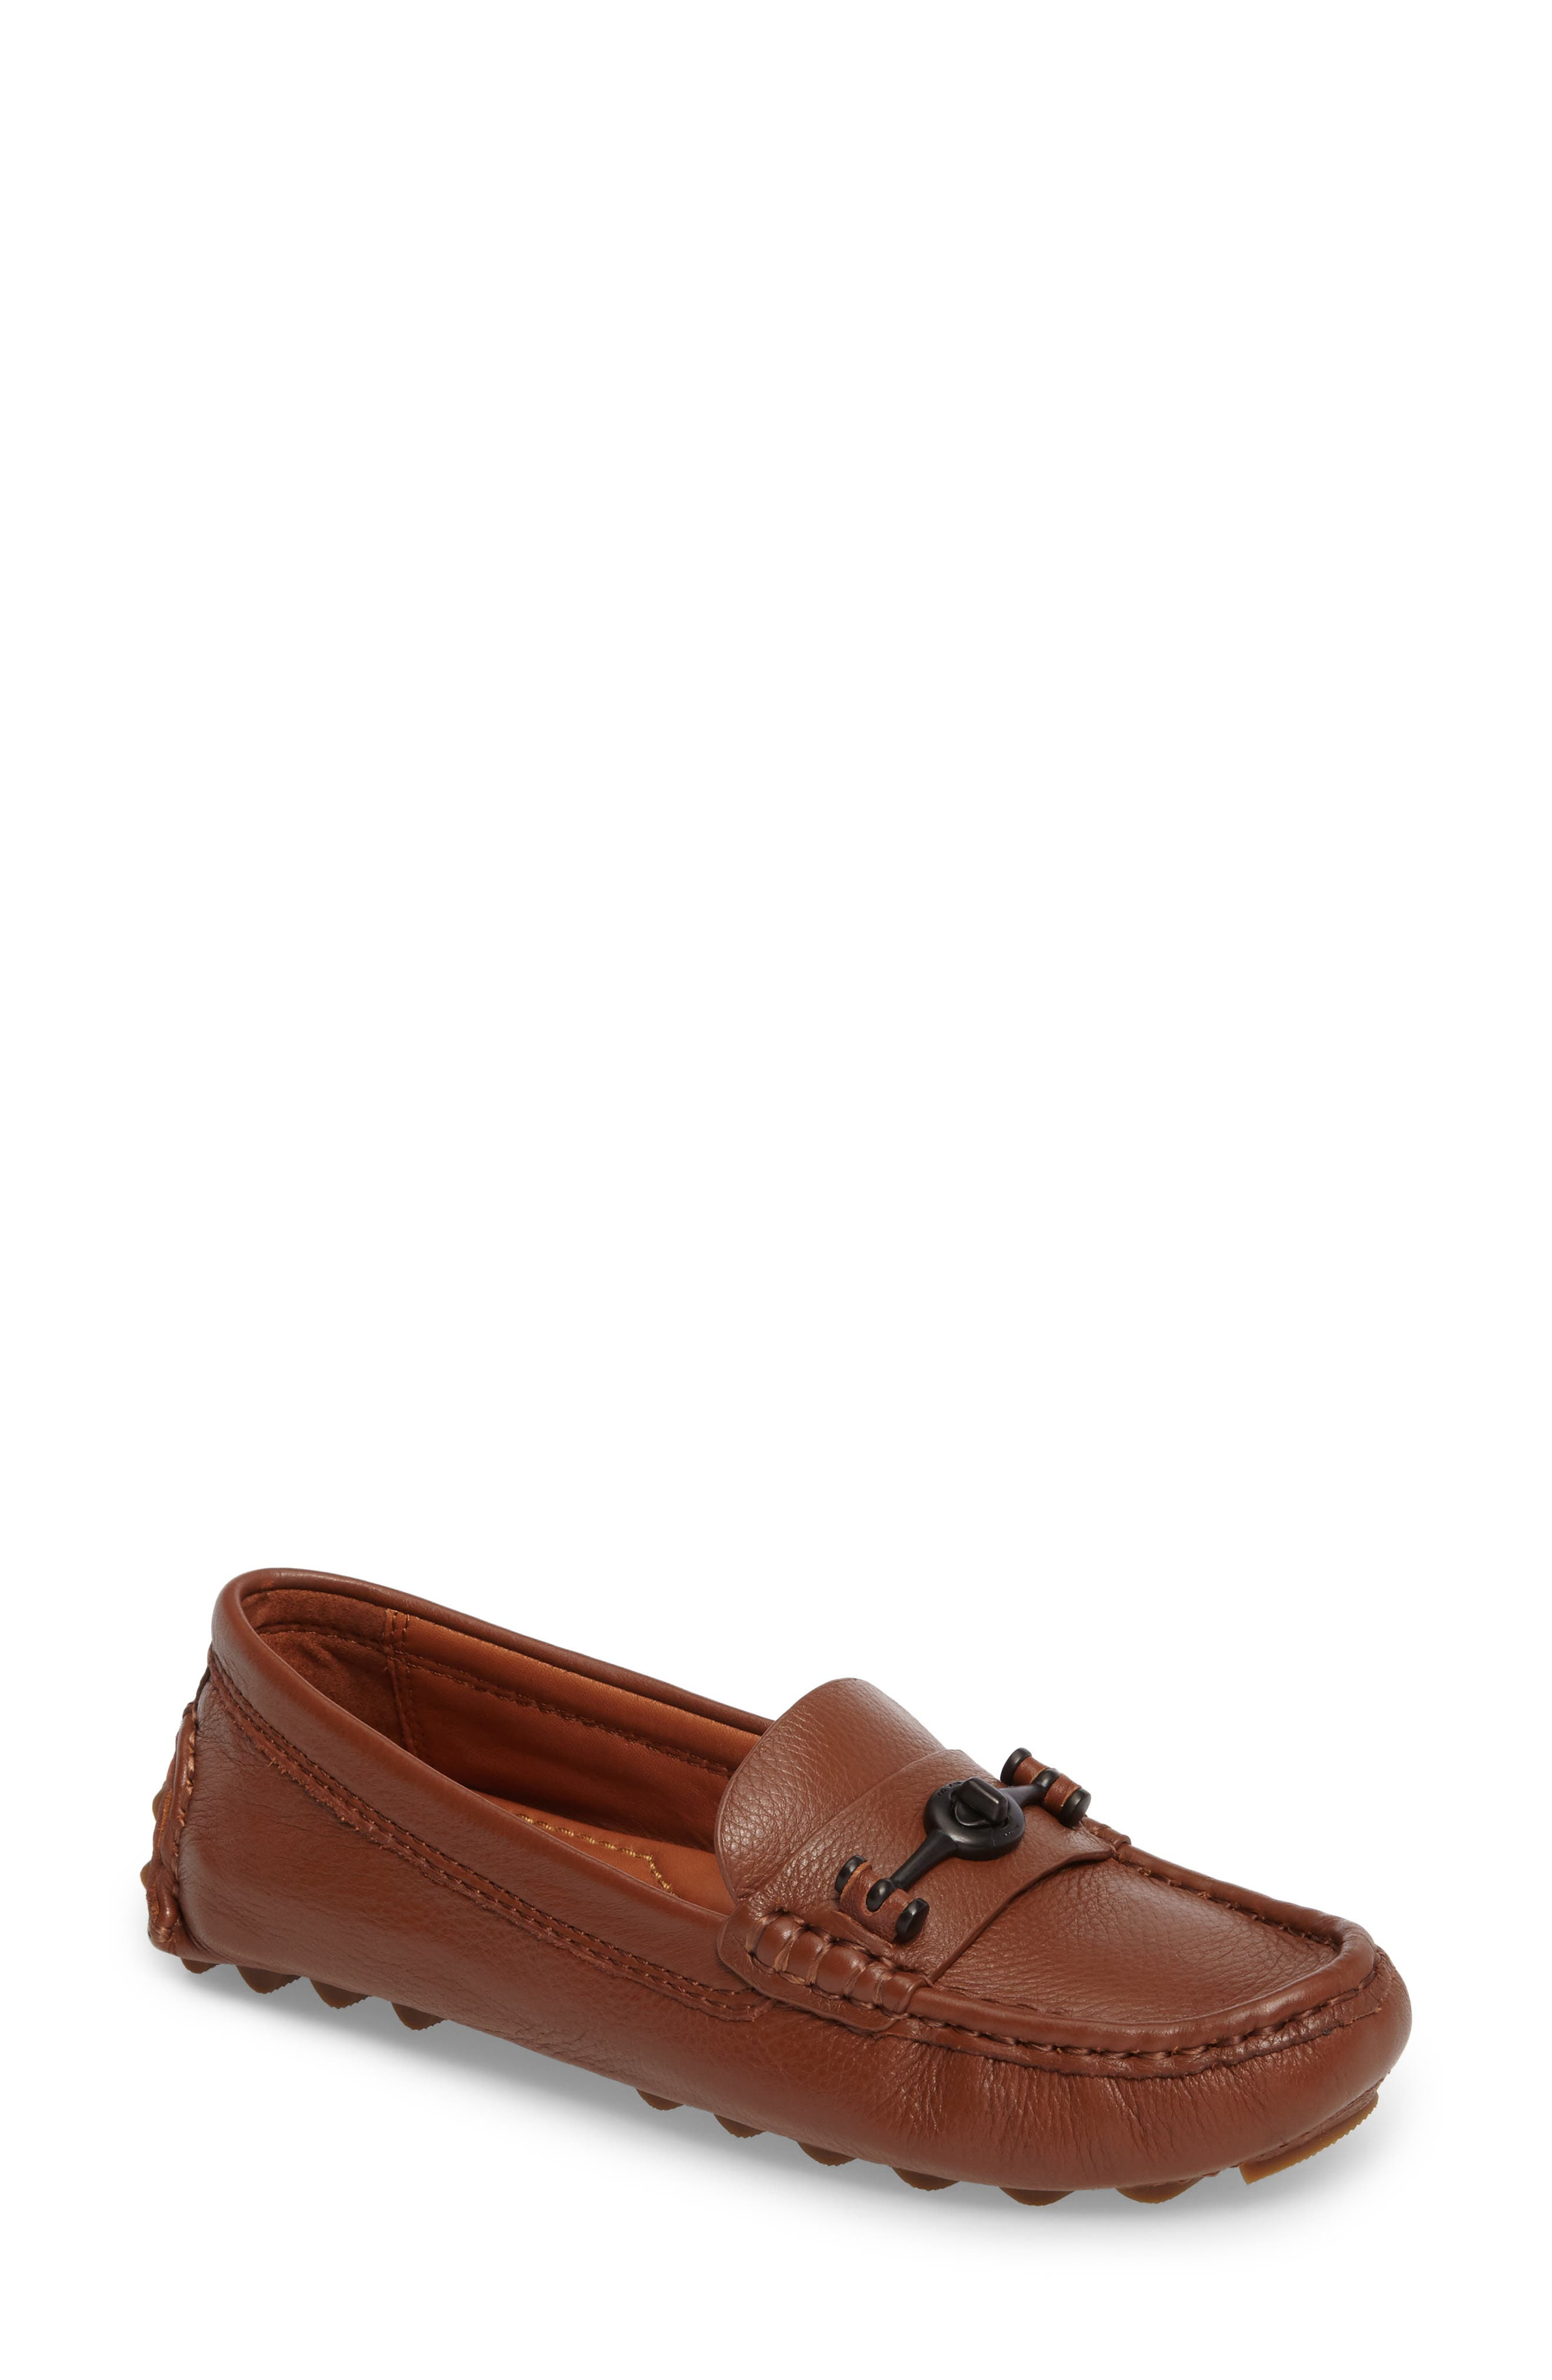 Crosby Driver Loafer,                             Main thumbnail 1, color,                             SADDLE LEATHER